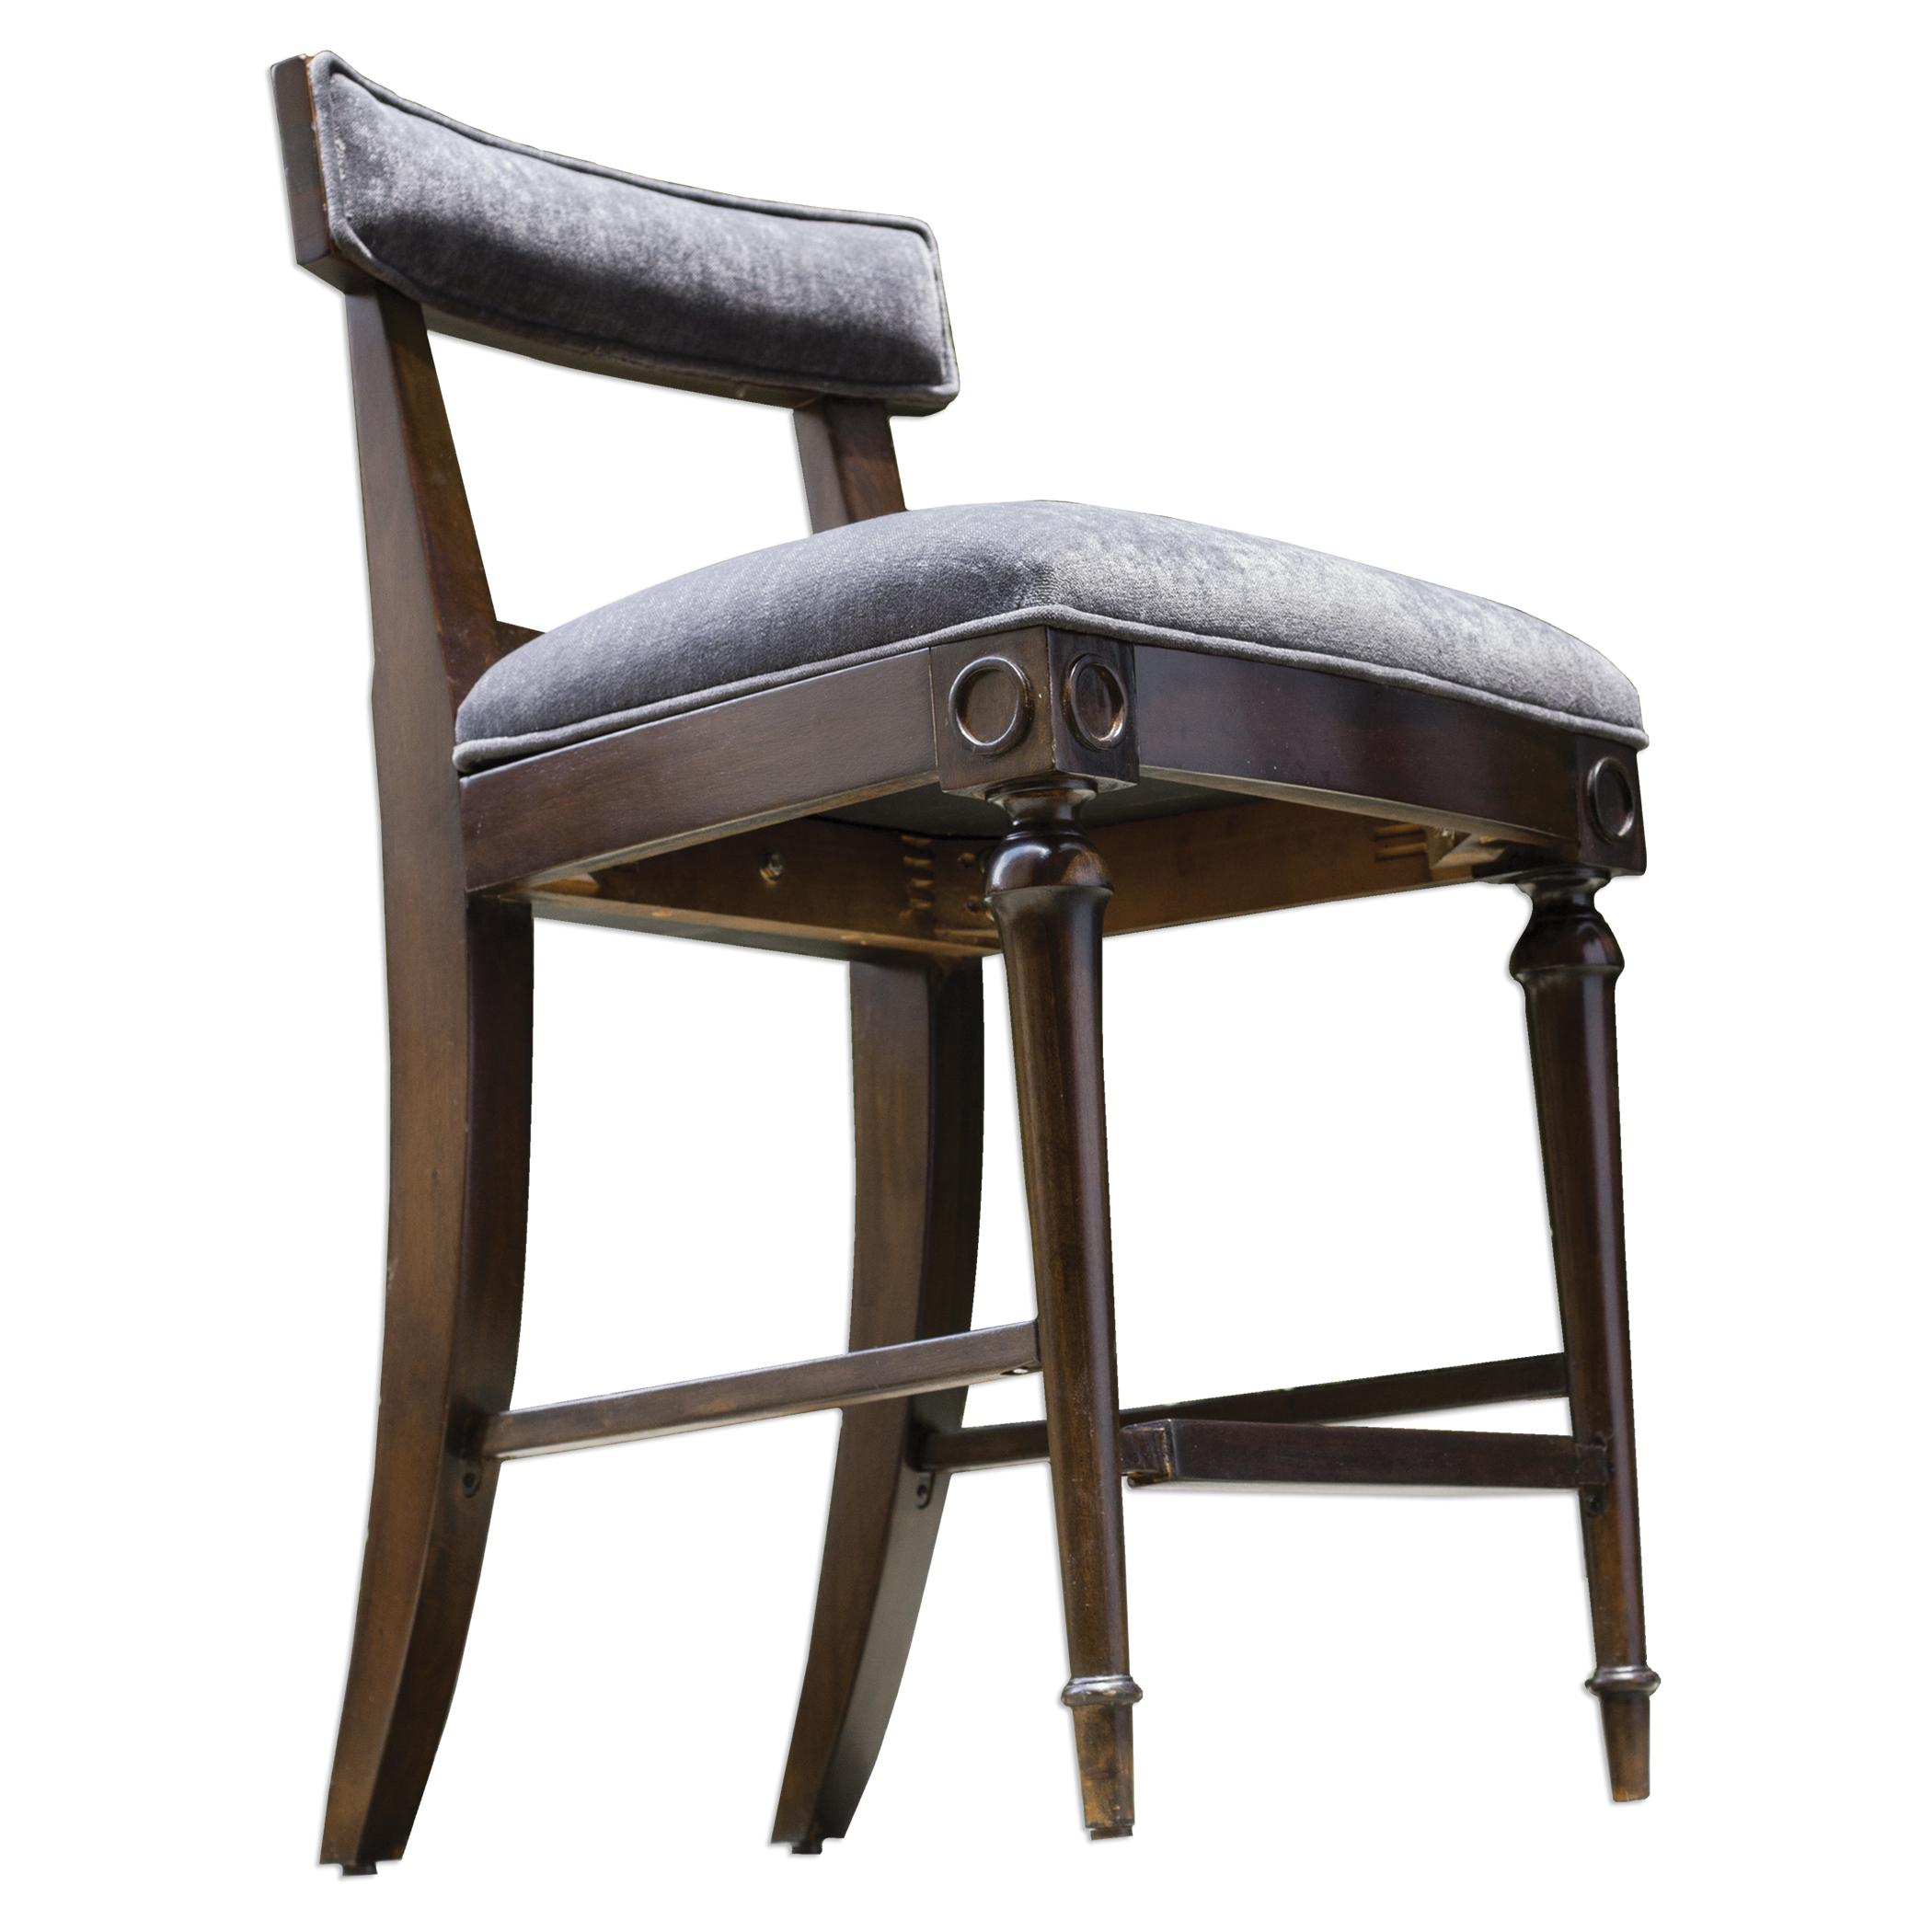 Uttermost Accent Furniture Nicandro Antique Hickory Counter Stool - Item Number: 23650